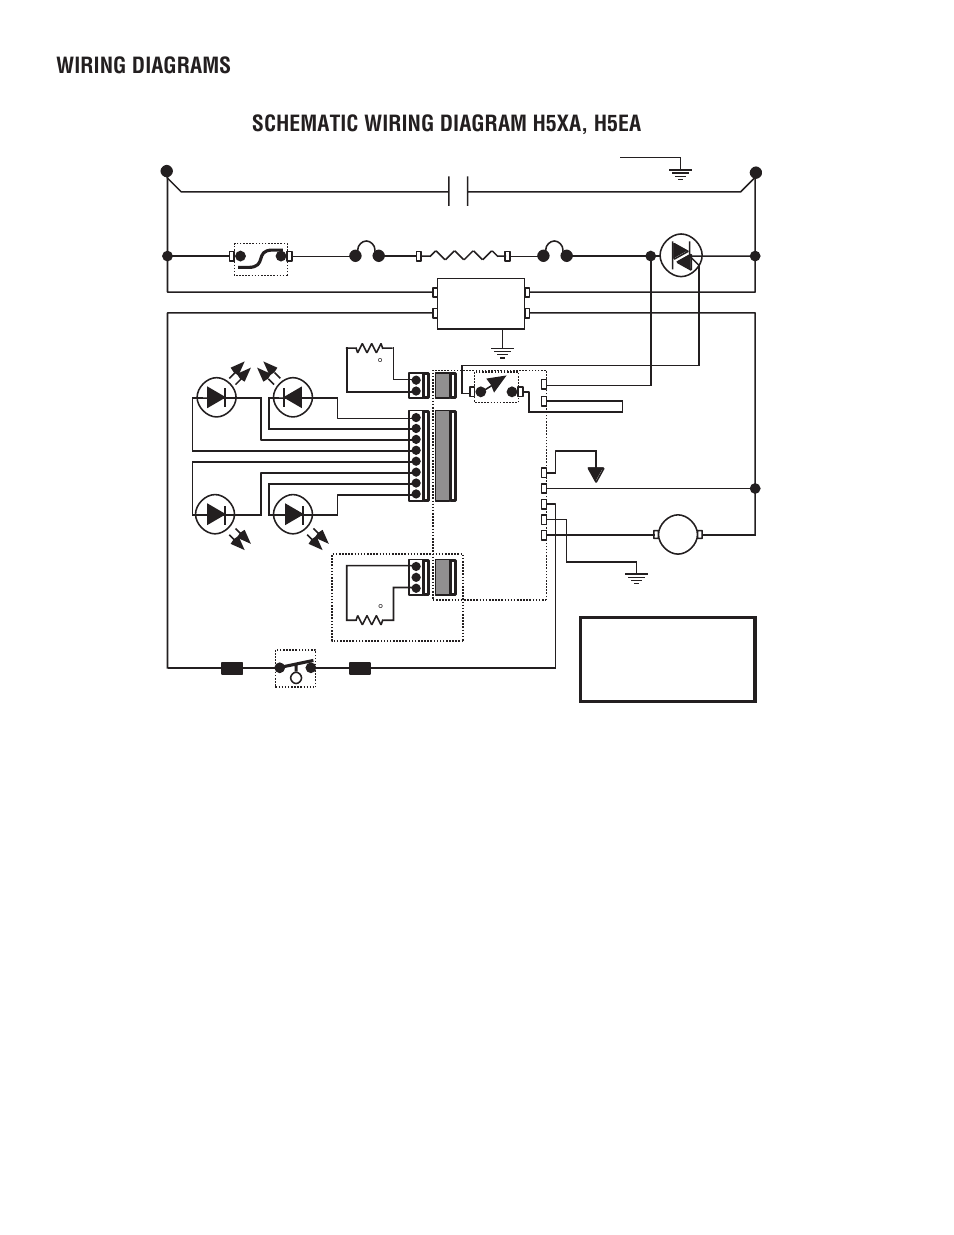 hight resolution of 230 volts a c 2 wire single phase schematic wiring diagram h5xa h5ea wiring